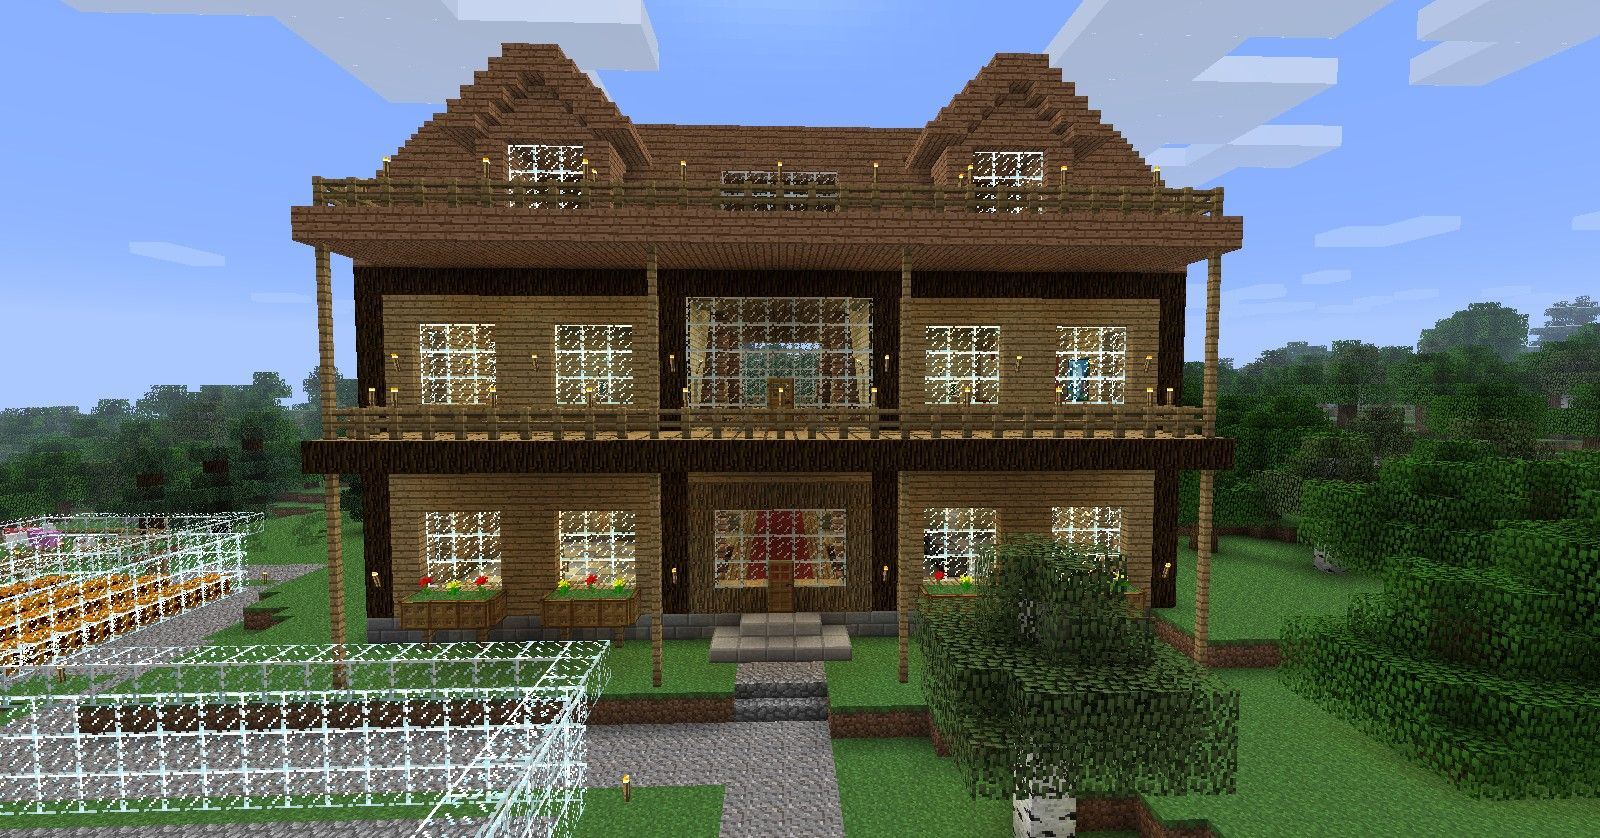 Minecraft house ideas google search minecraft ideas pinterest minecraft house designs - Minecraft house ideas ...